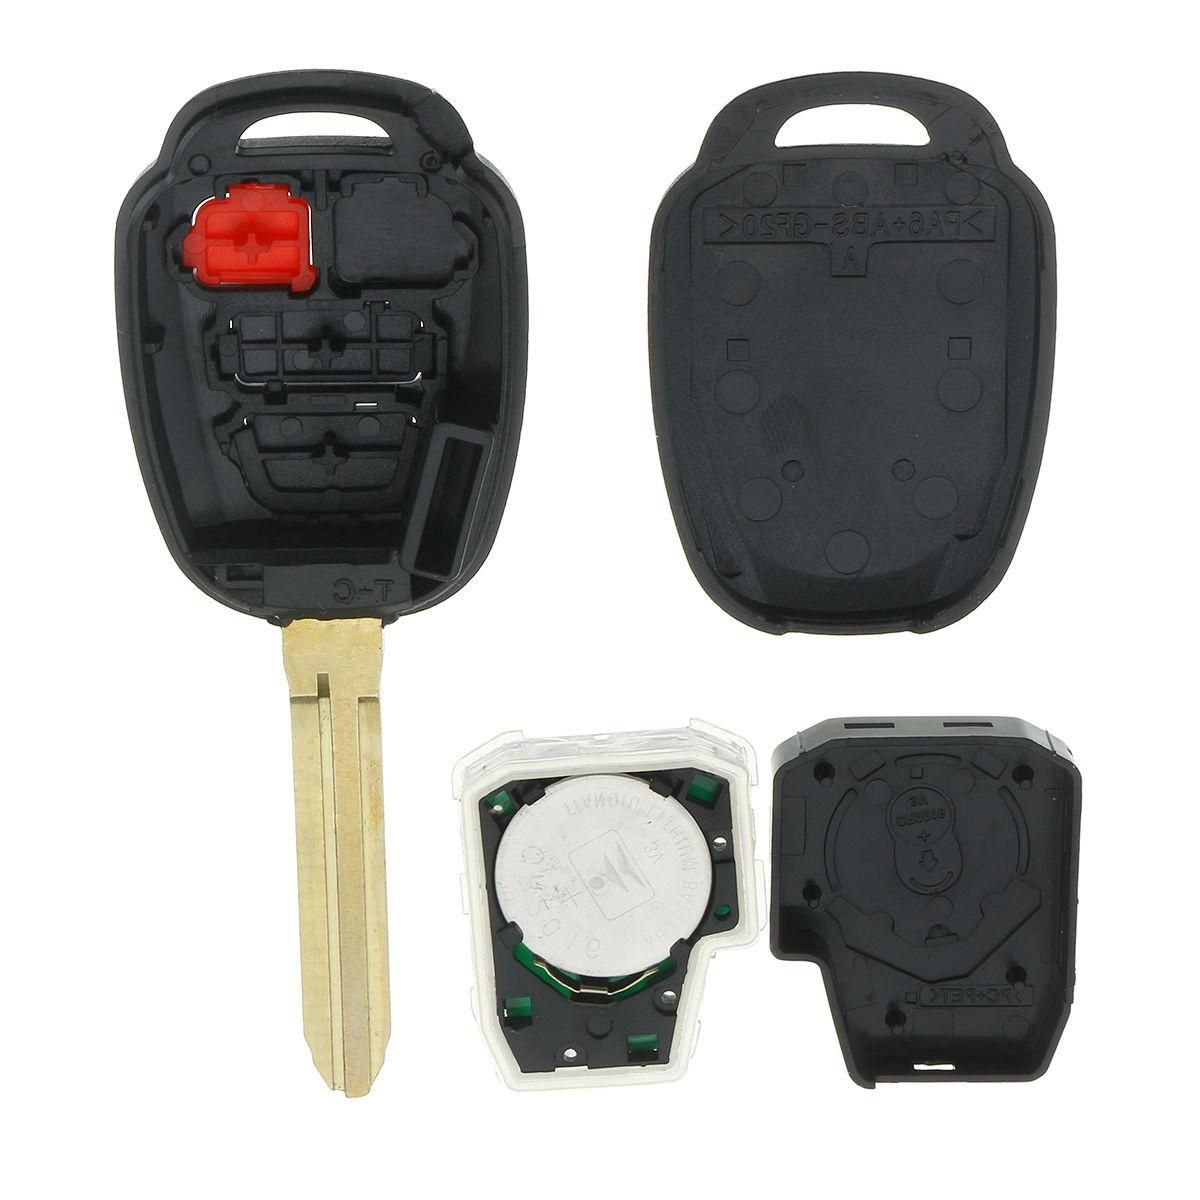 Replacement Car Remote Key Fob With H Chip For Toyota Prius C V